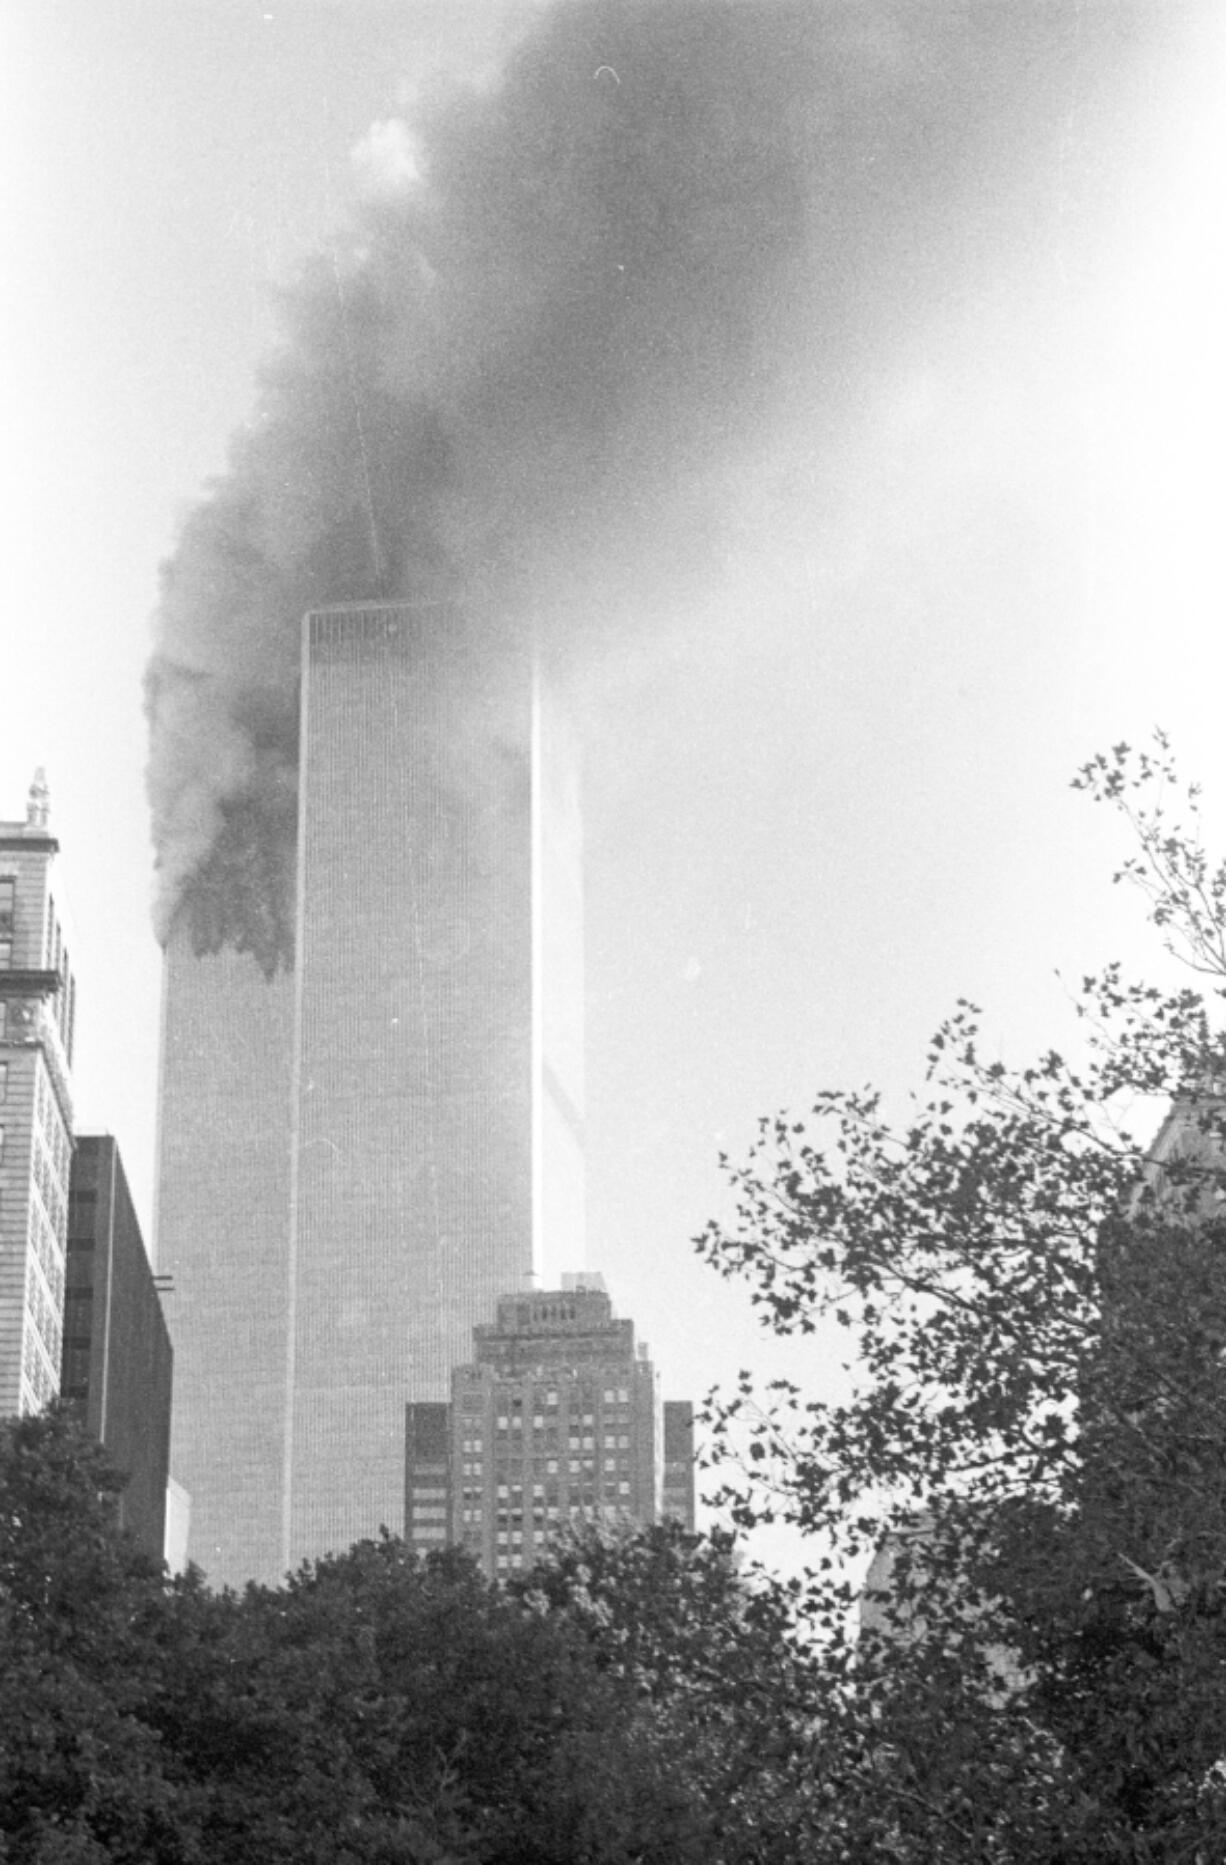 Michelle Baker of Vancouver was visiting New York City on Sept. 11, 2001. She took this photo from about 10 blocks away from the World Trade Center.